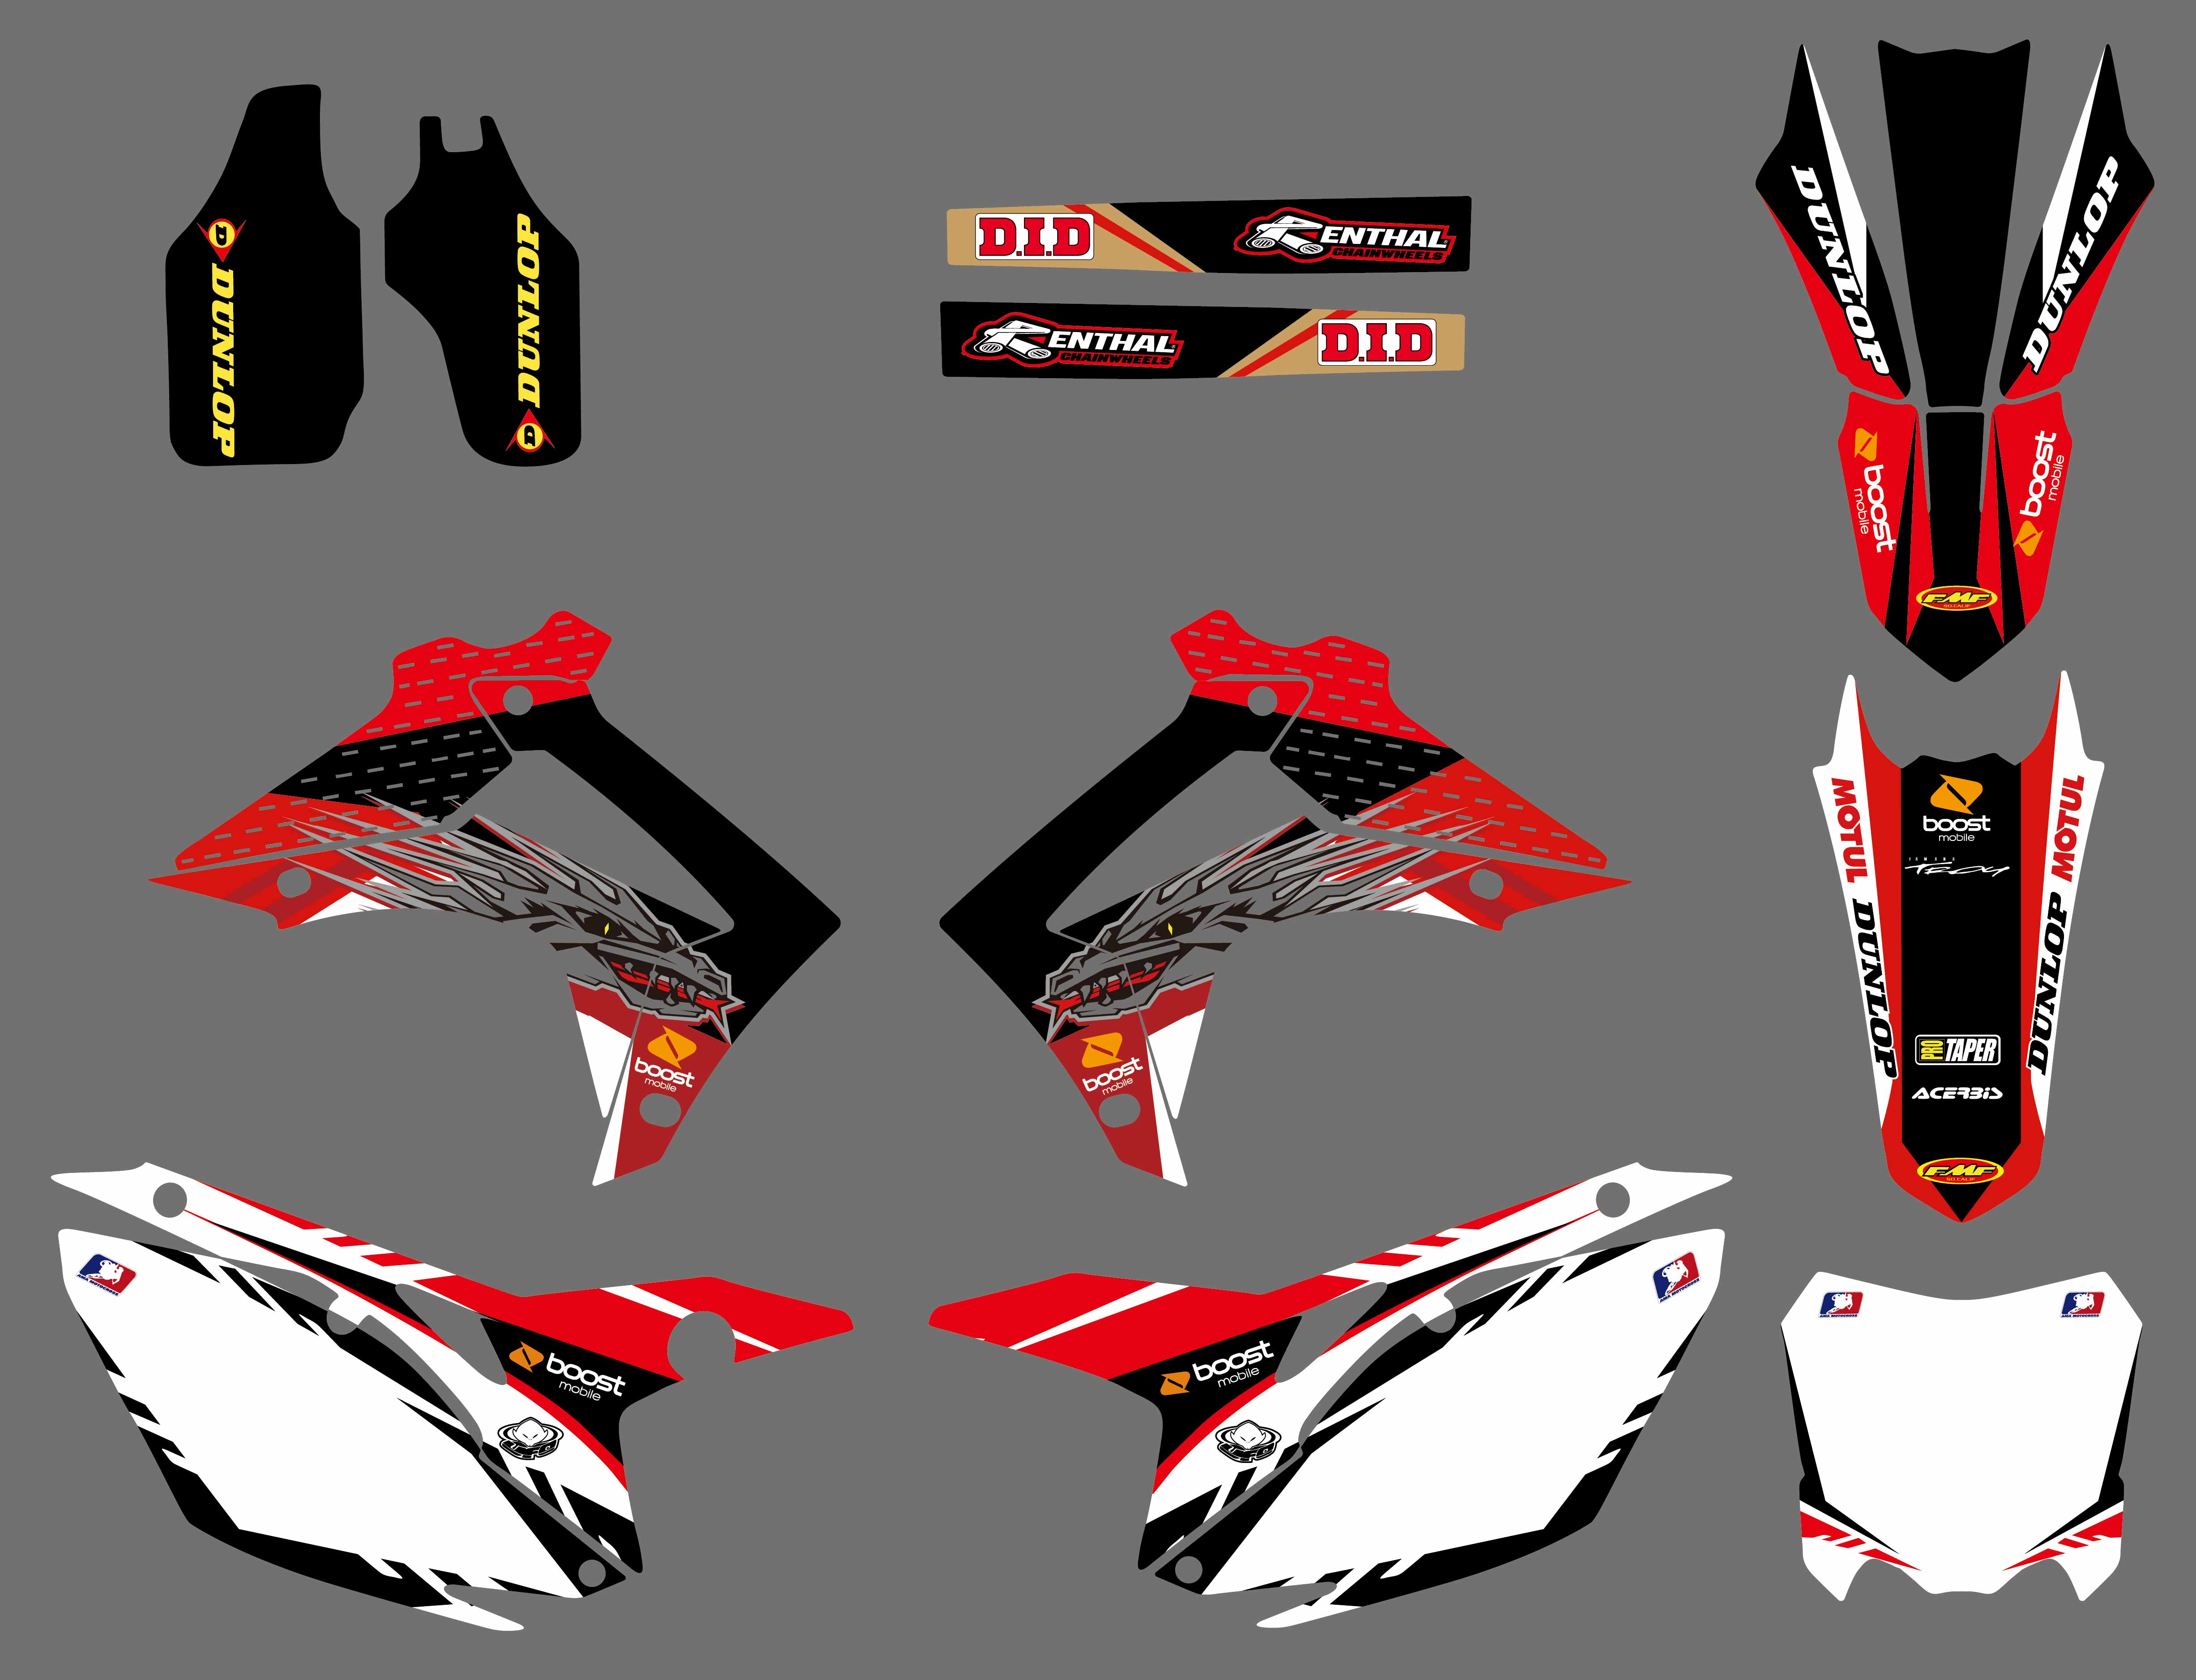 Motorcycle Team Graphics Decals STICKERS For Honda CRF450R CRF450 2013-2016  CRF250R CRF250 2014 2015 2016 2017 2018 CRF 250 450